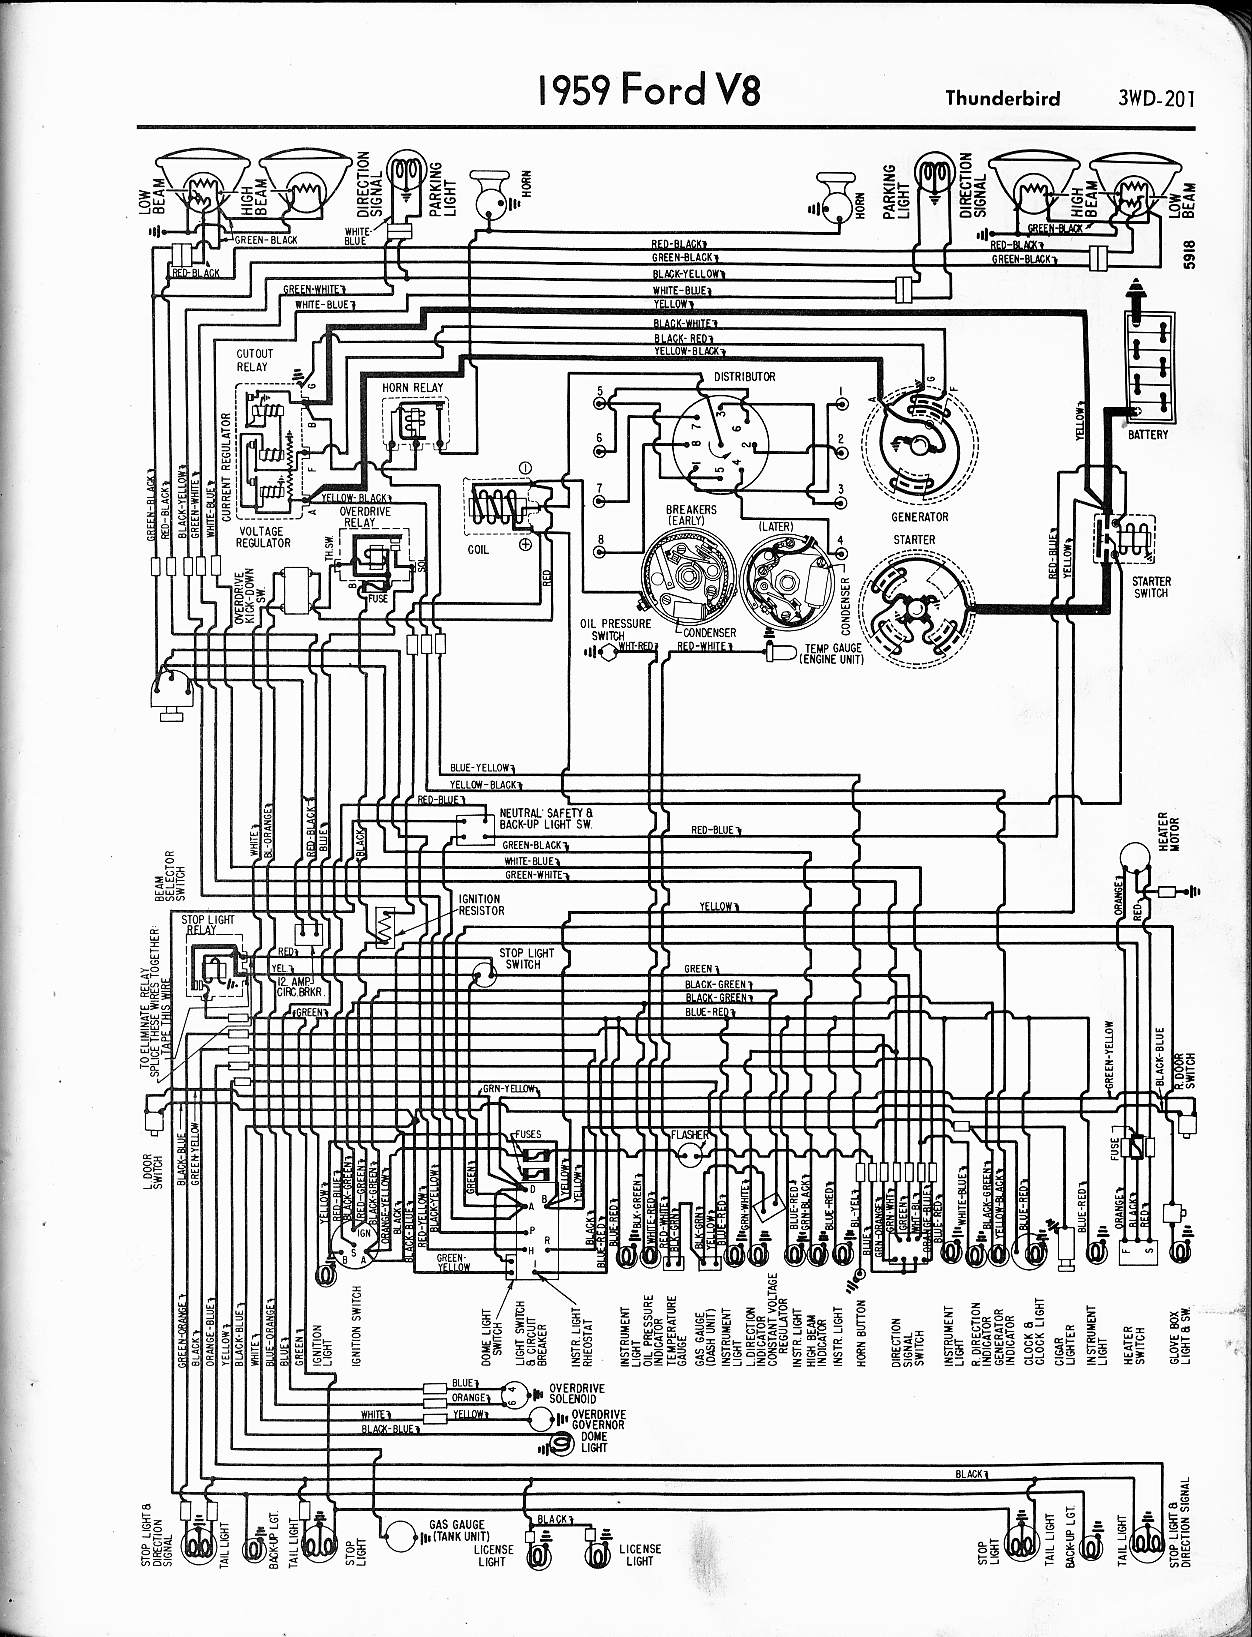 57 65 Ford Wiring Diagrams 555 Fuse Box 1959 Thunderbird